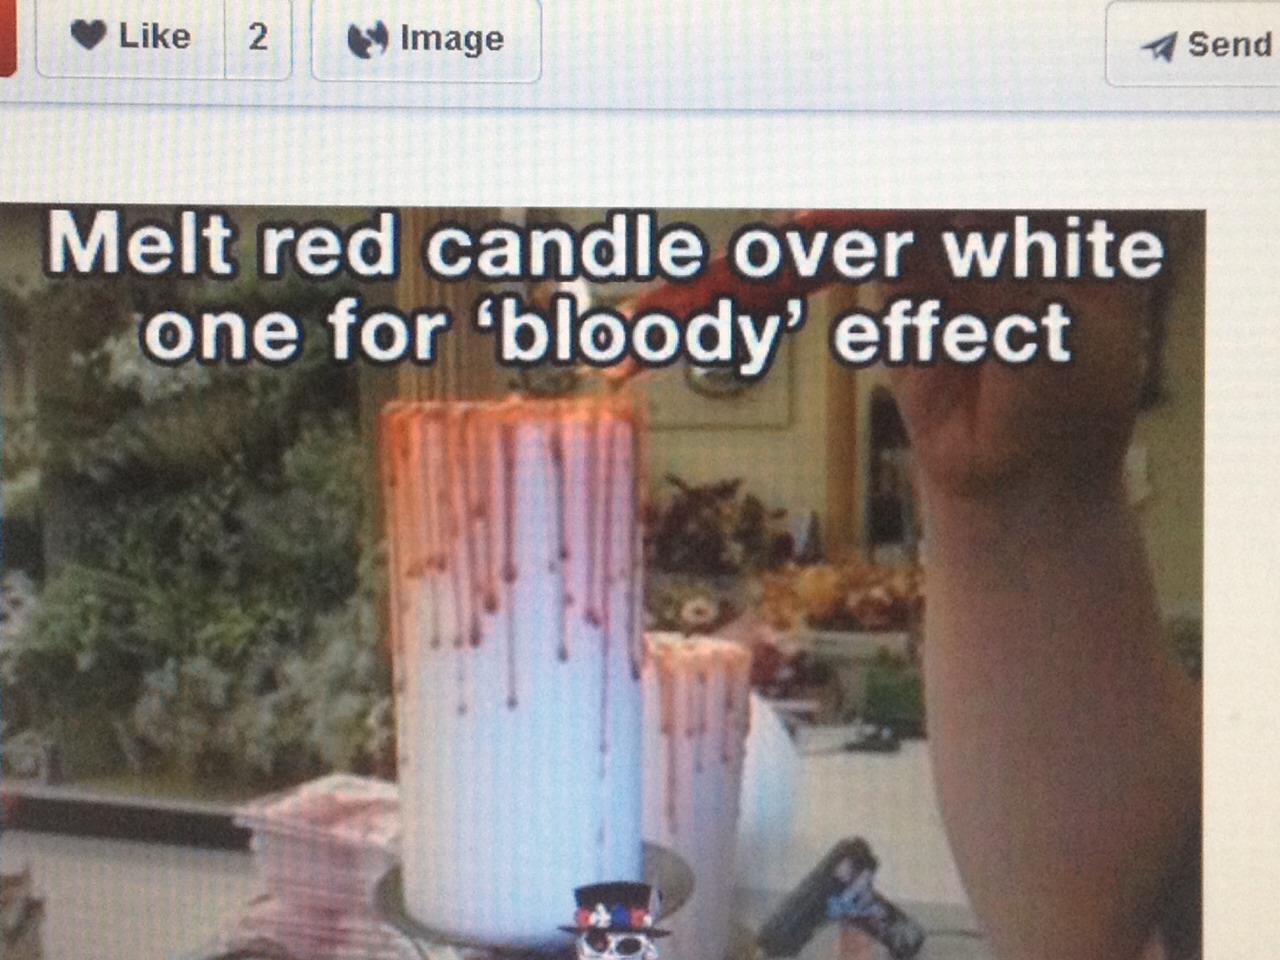 Melt red candle over white candle for bloody effect!